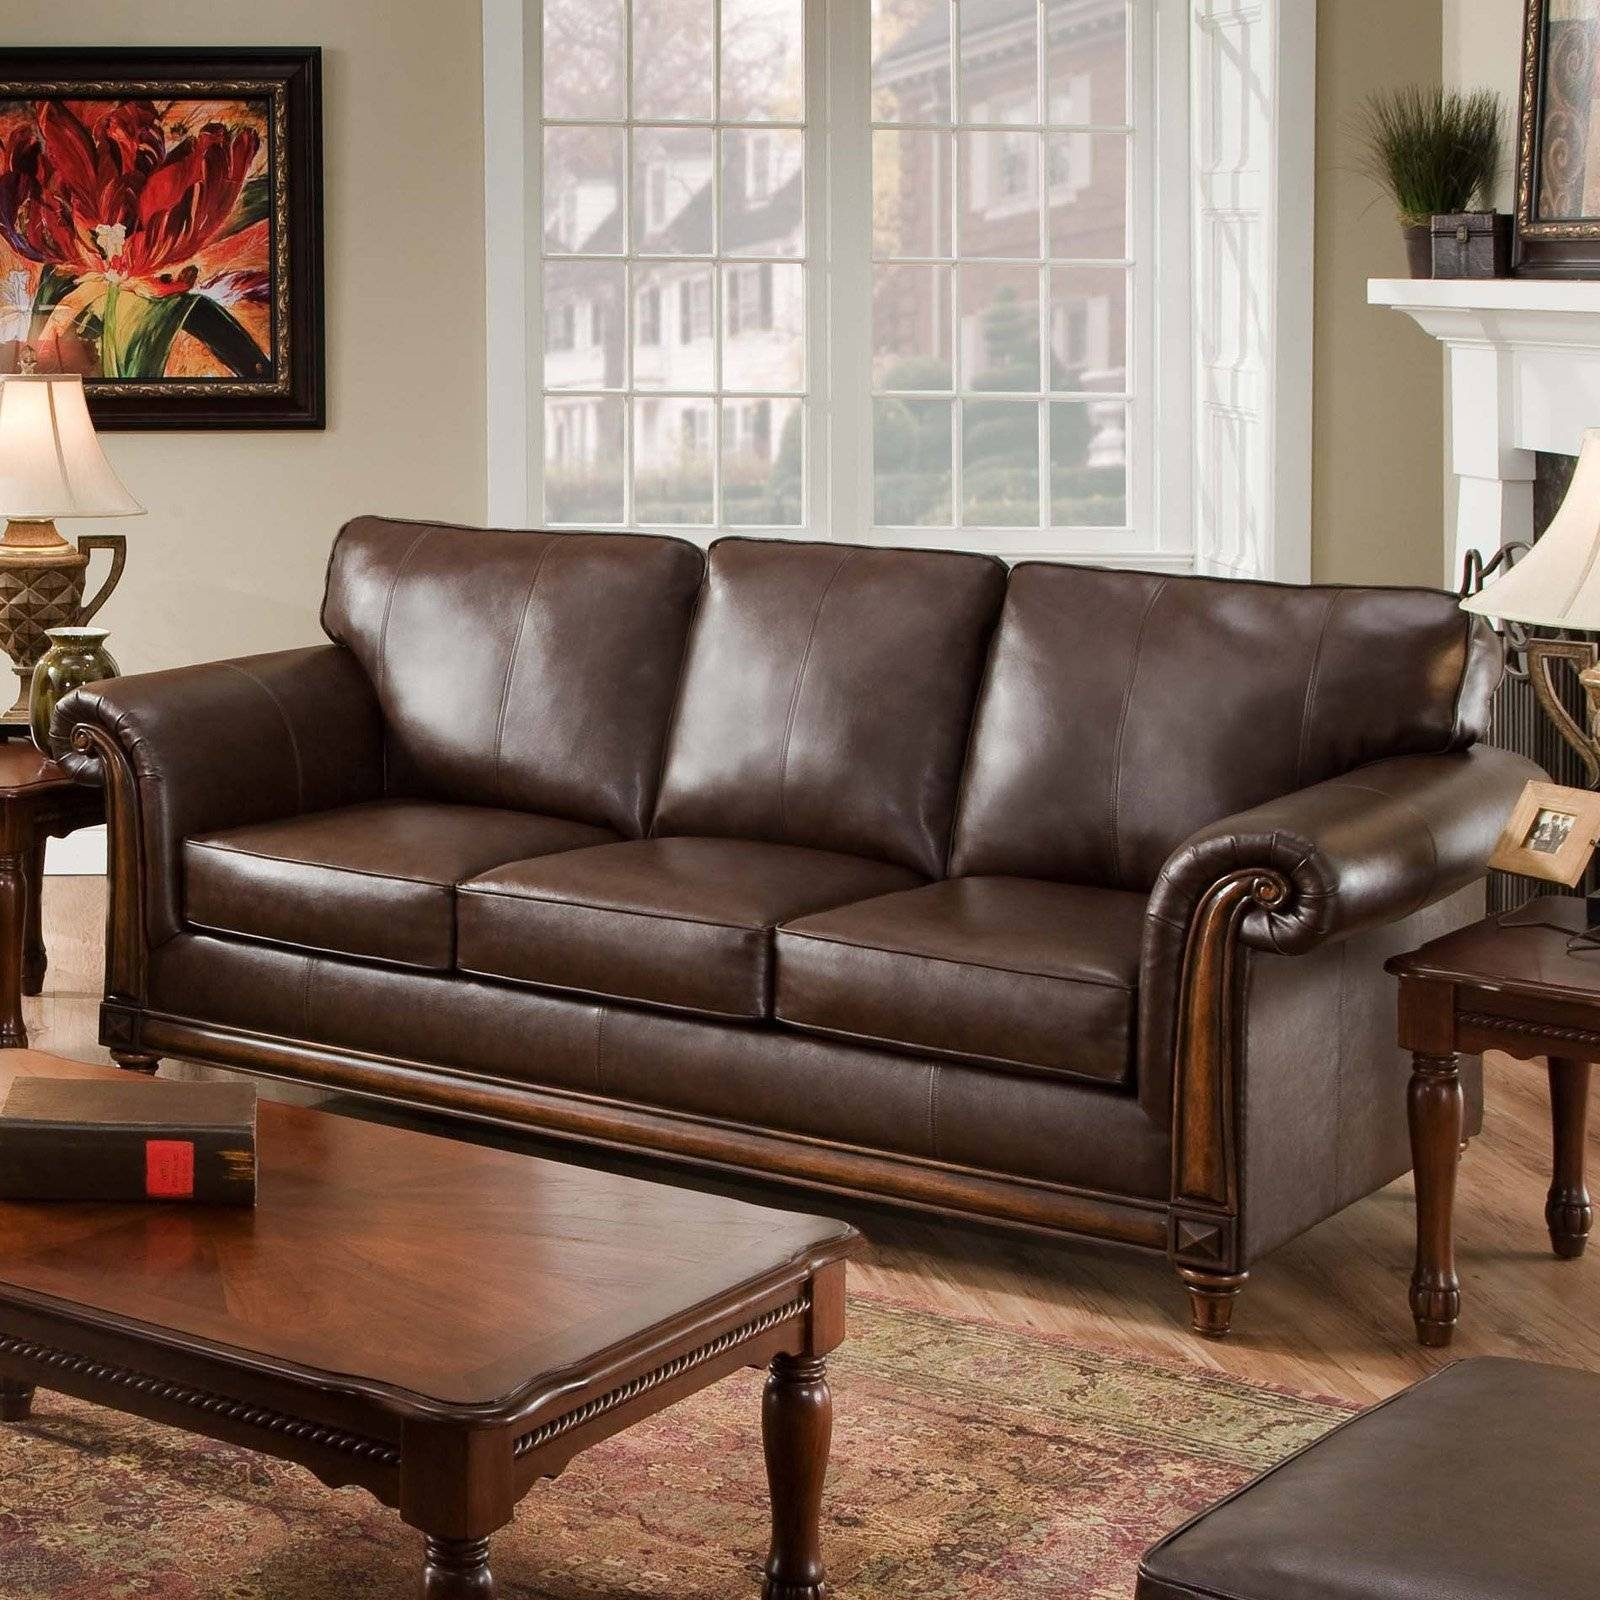 Simmons San Diego Coffee Leather Loveseat | Hayneedle Regarding Simmons Leather Sofas And Loveseats (View 12 of 15)